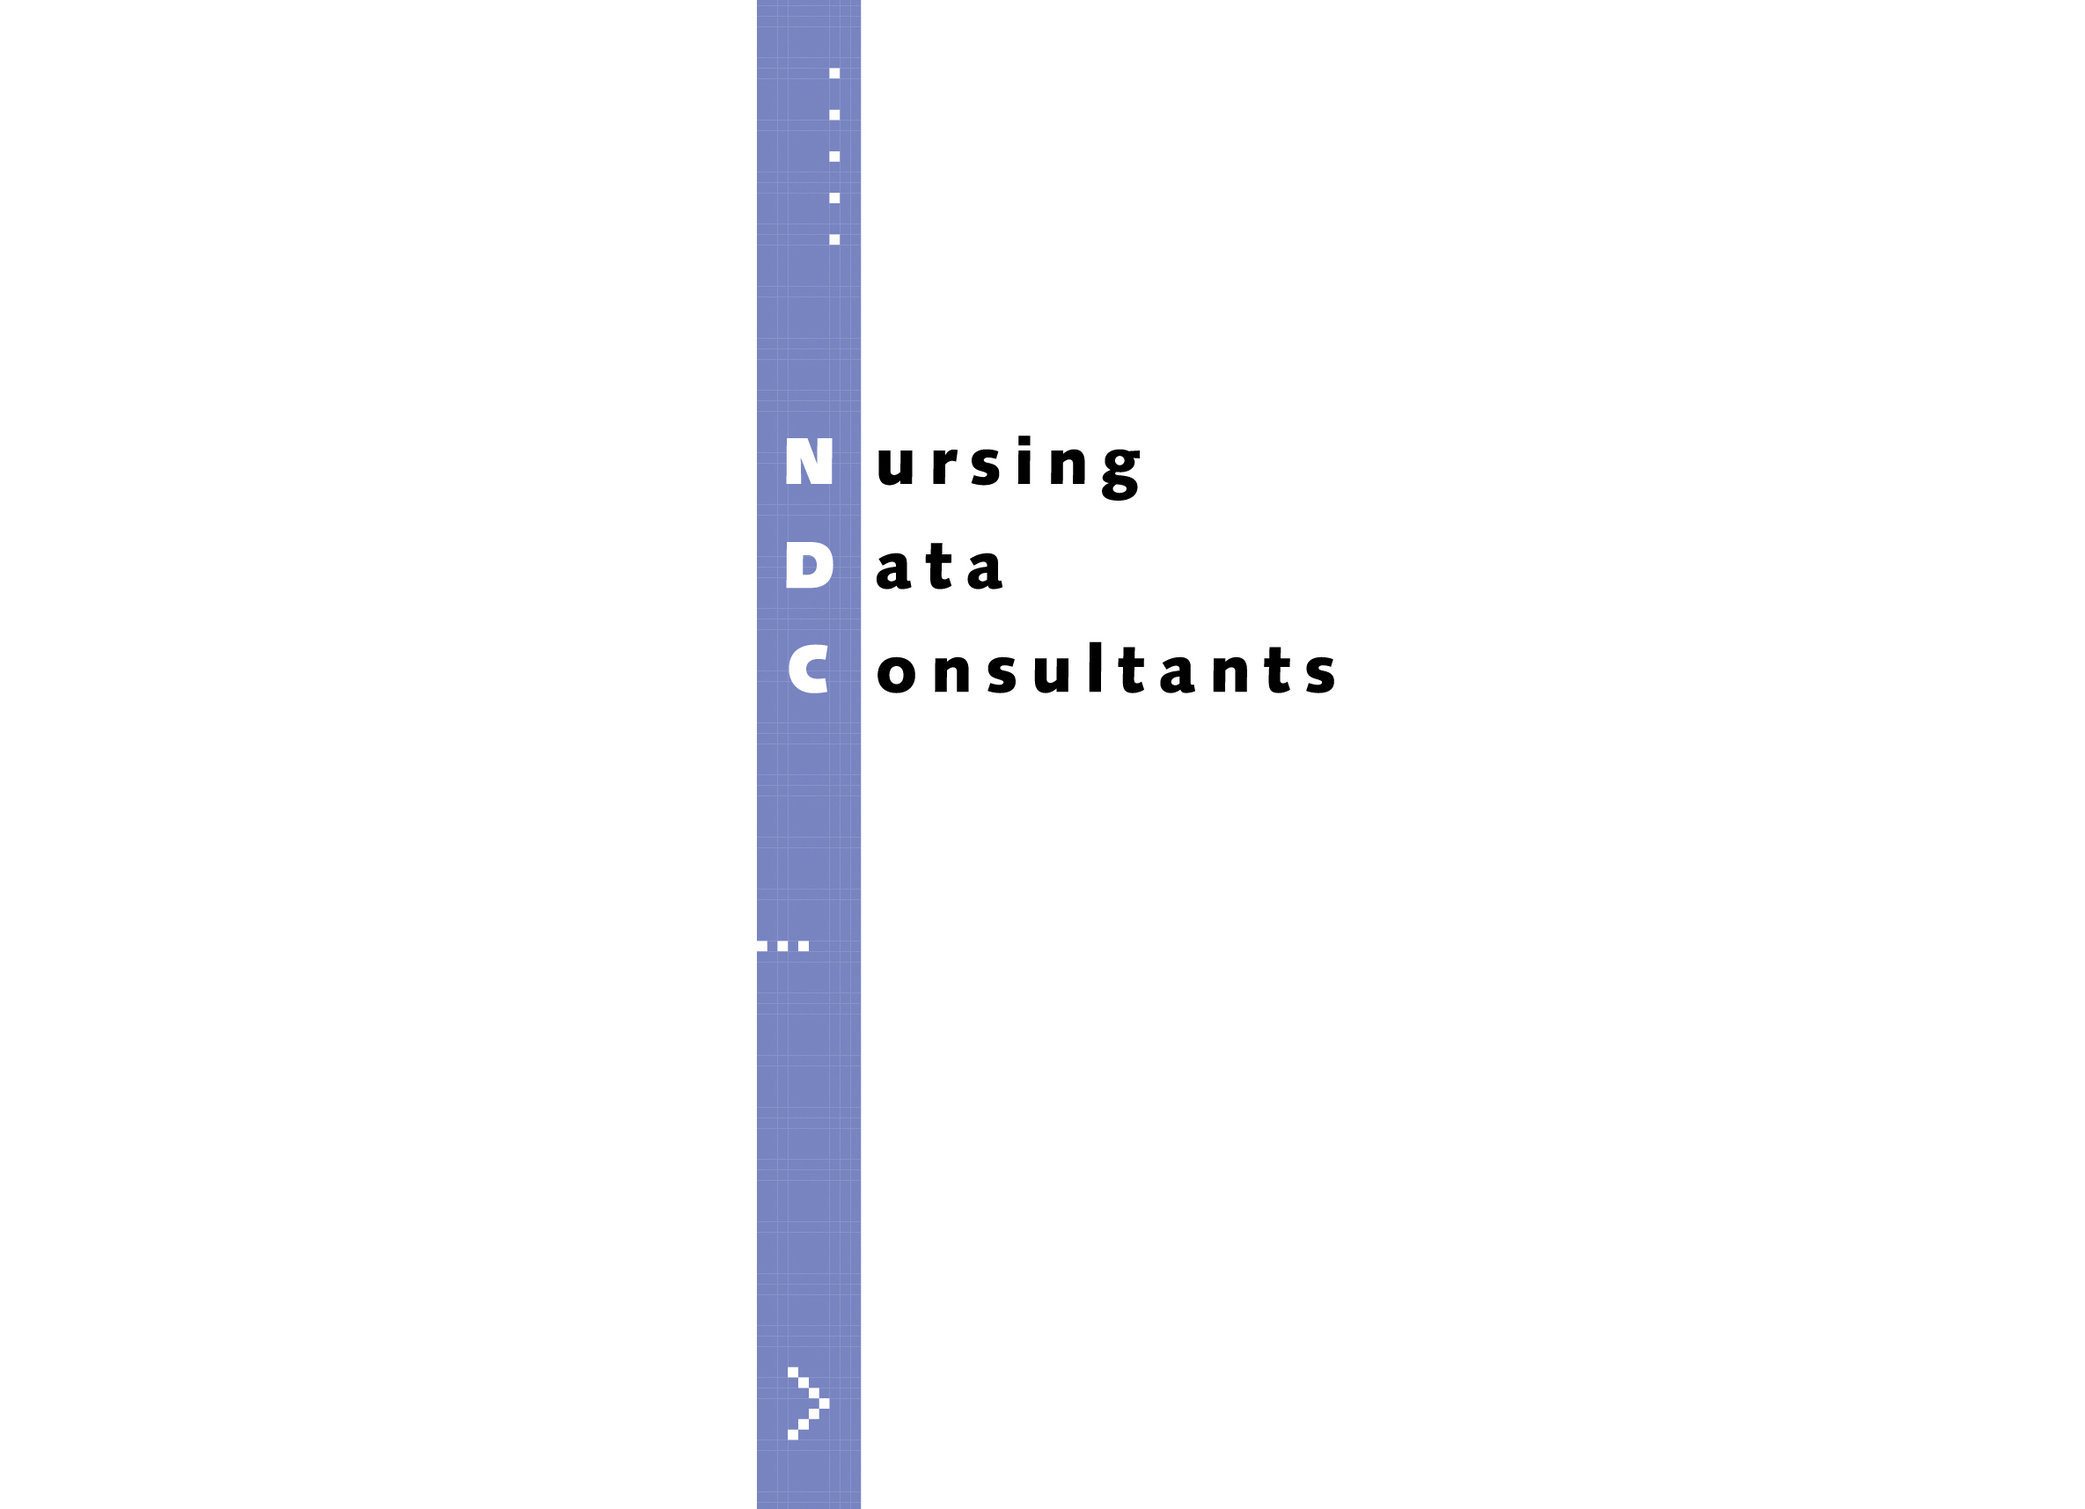 Nursung Data Consultants